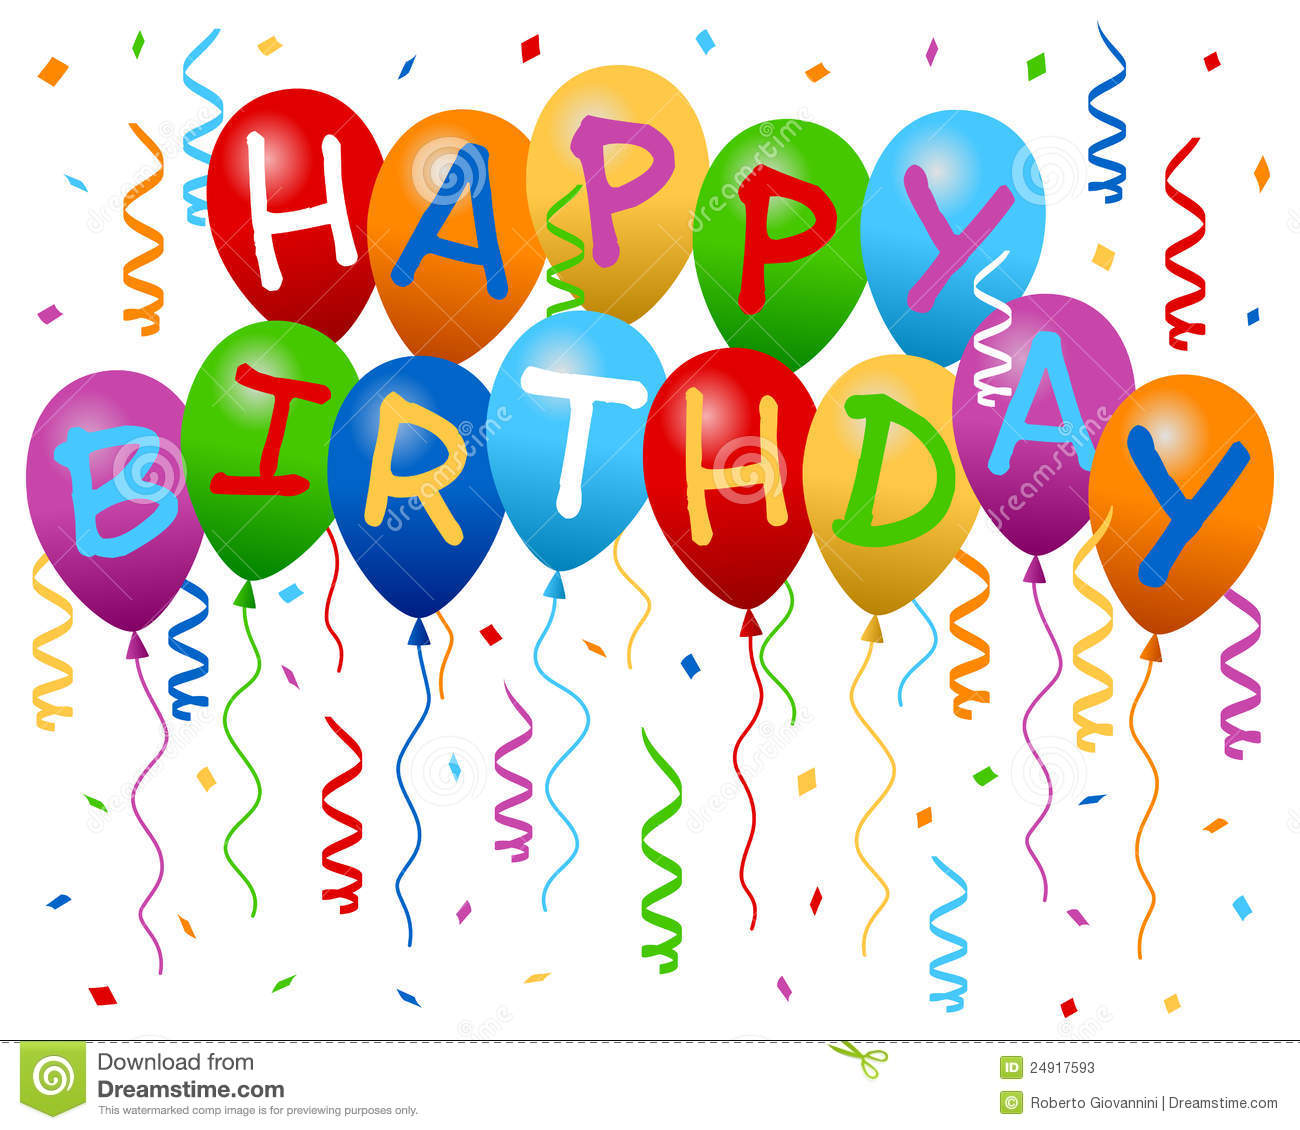 [Image: happy-birthday-balloons-banner-24917593.jpg]